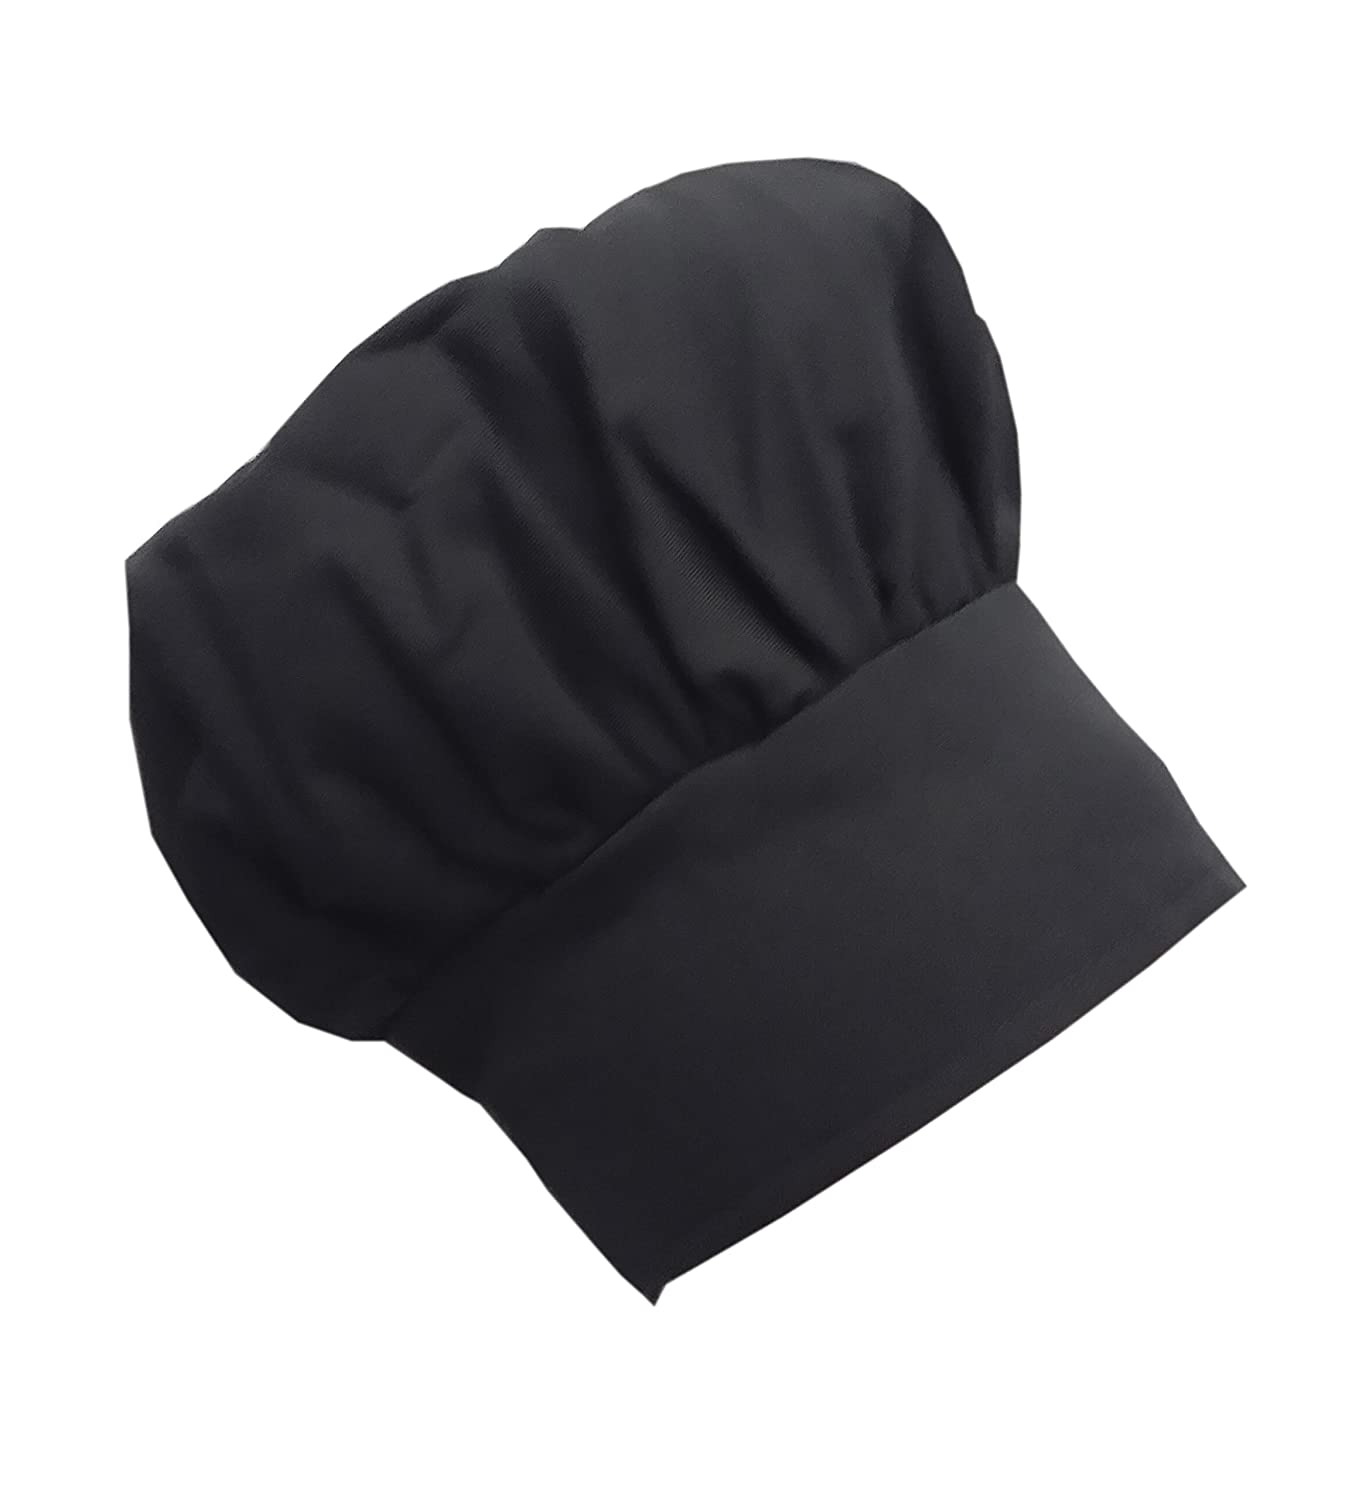 Chefskin Chef Mushroom Hat Kids Children Black Adjustable Velcro CHEFSKIN MUSHROOM HAT